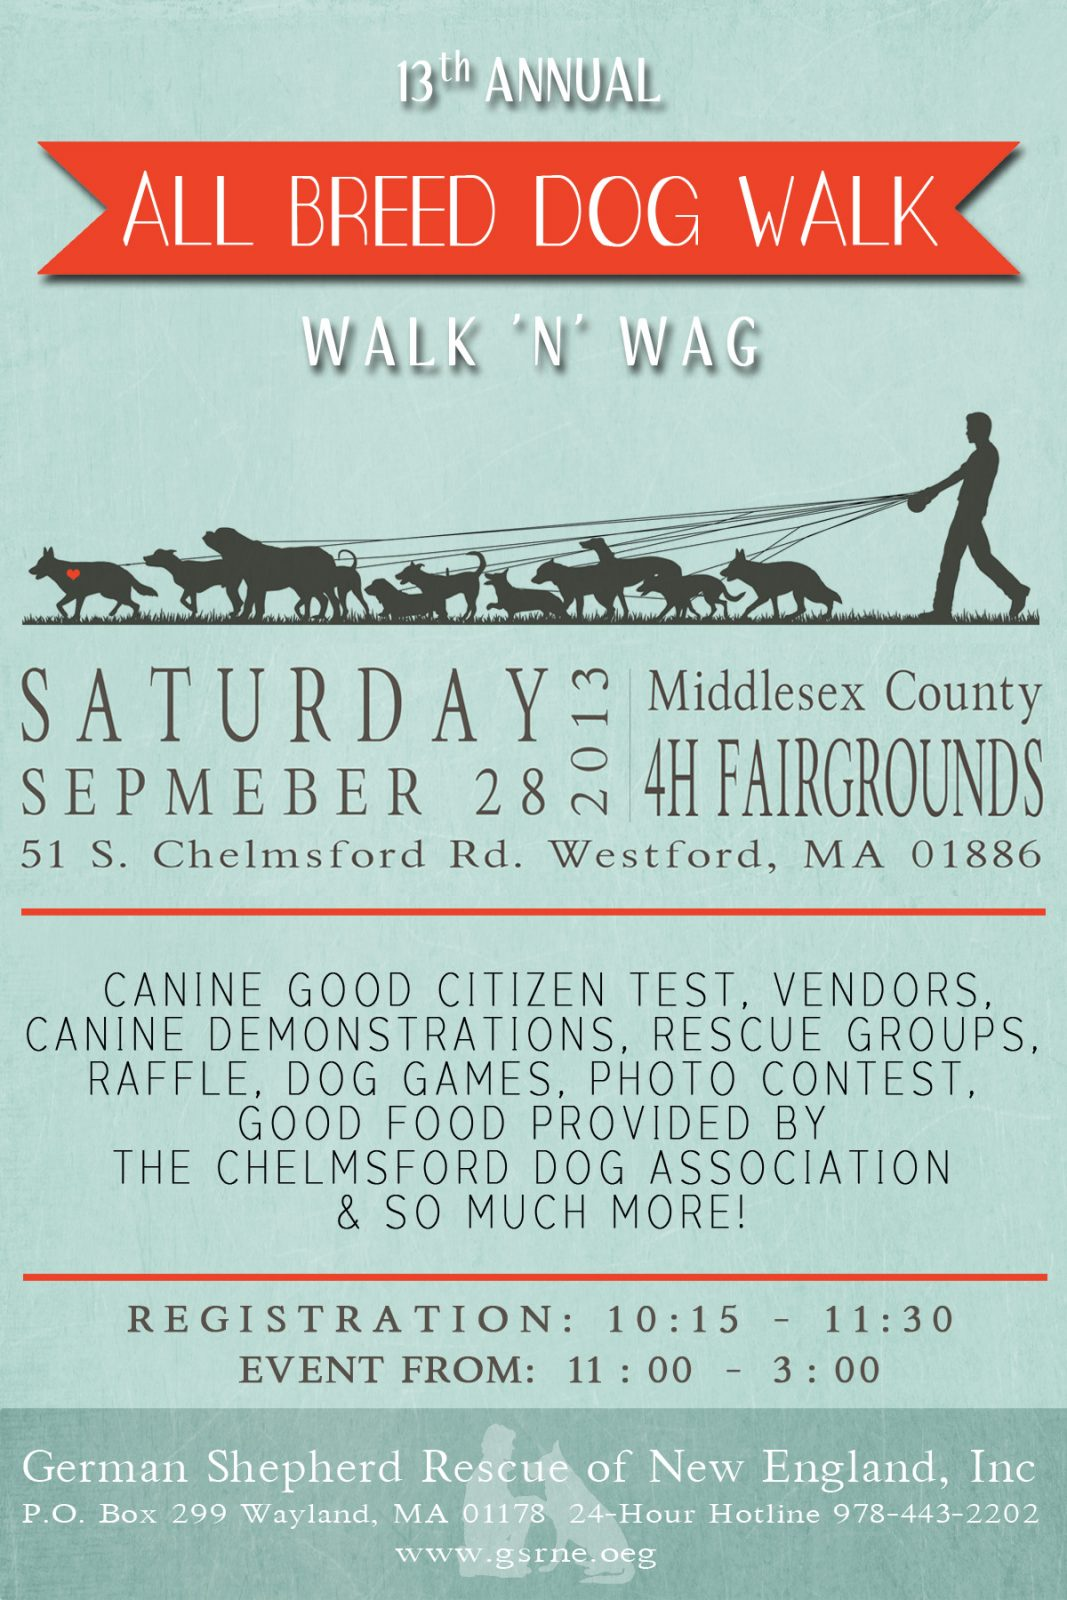 13th Annual Walk 'n' Wag  All Breed Dog Walk Fundraiser